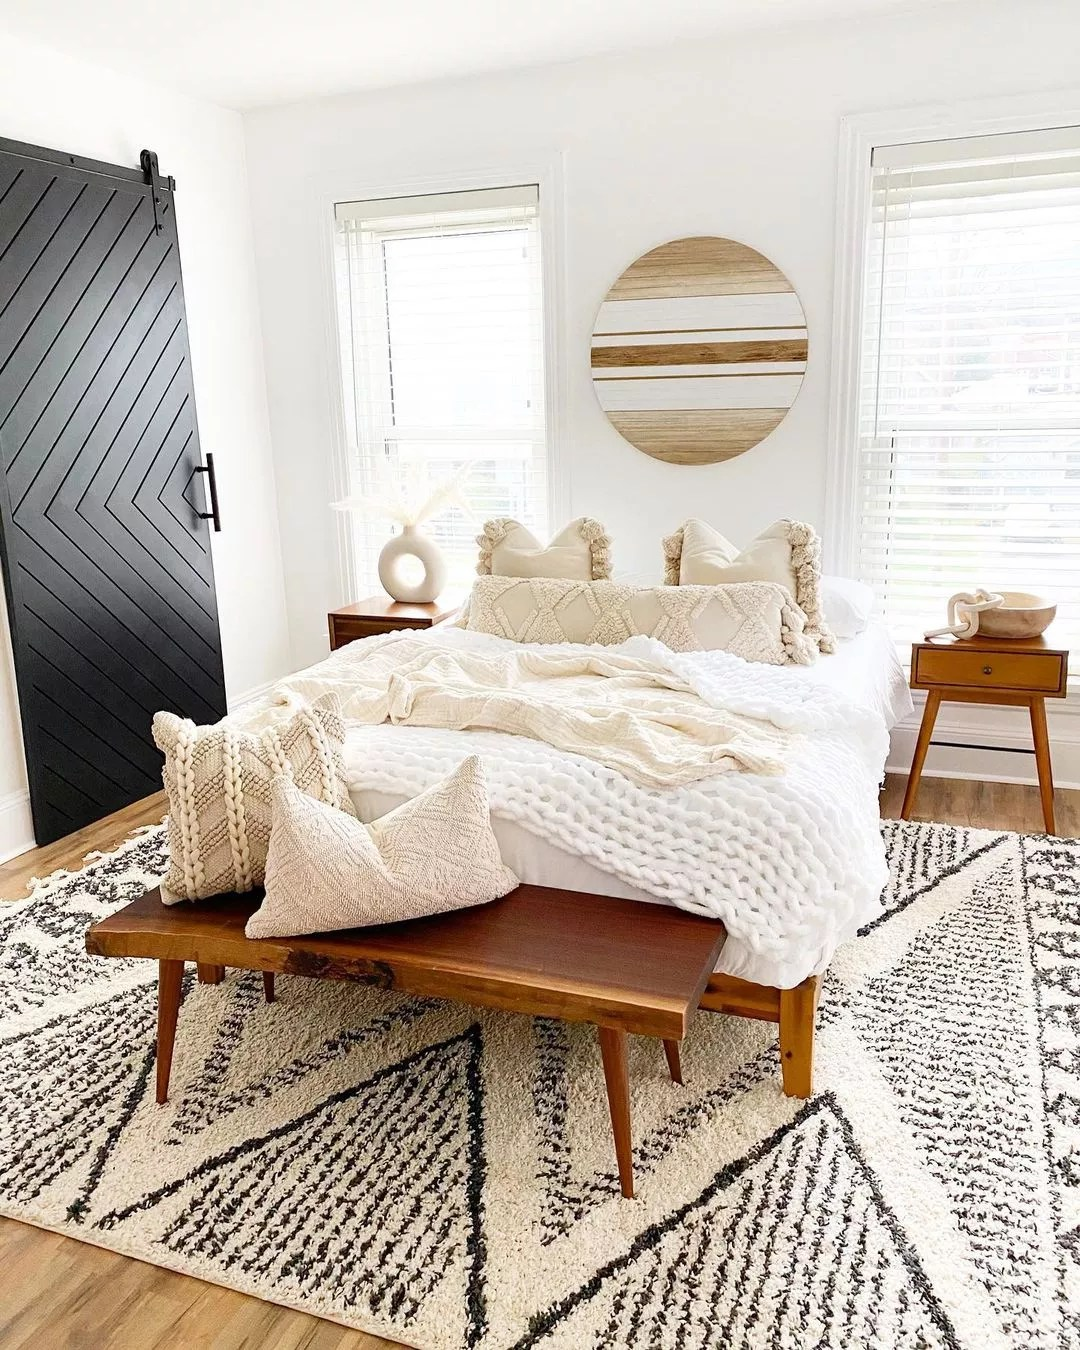 Bright boho bedroom with black and white patterned rug. Photo by Instagram User @modernly_you